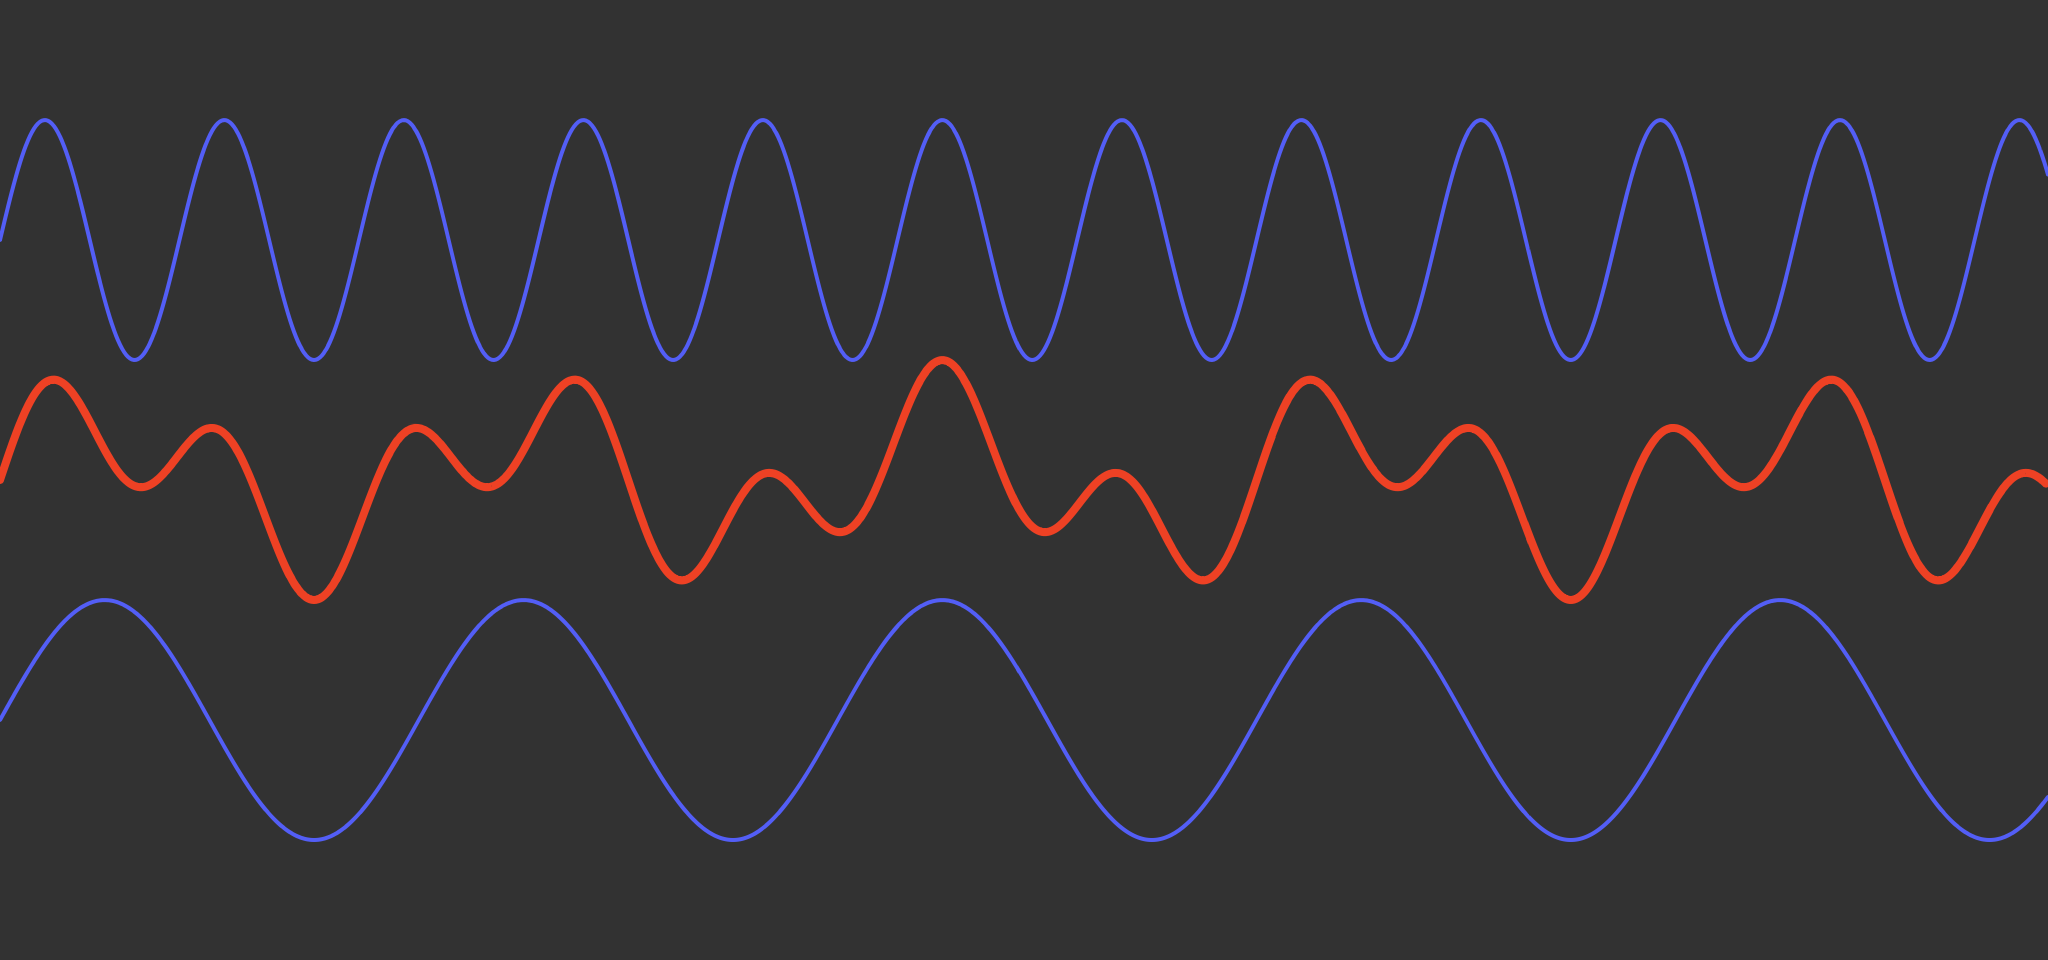 Graphic illustrating two sine waves and a third vector that's the linear interpolation between them.